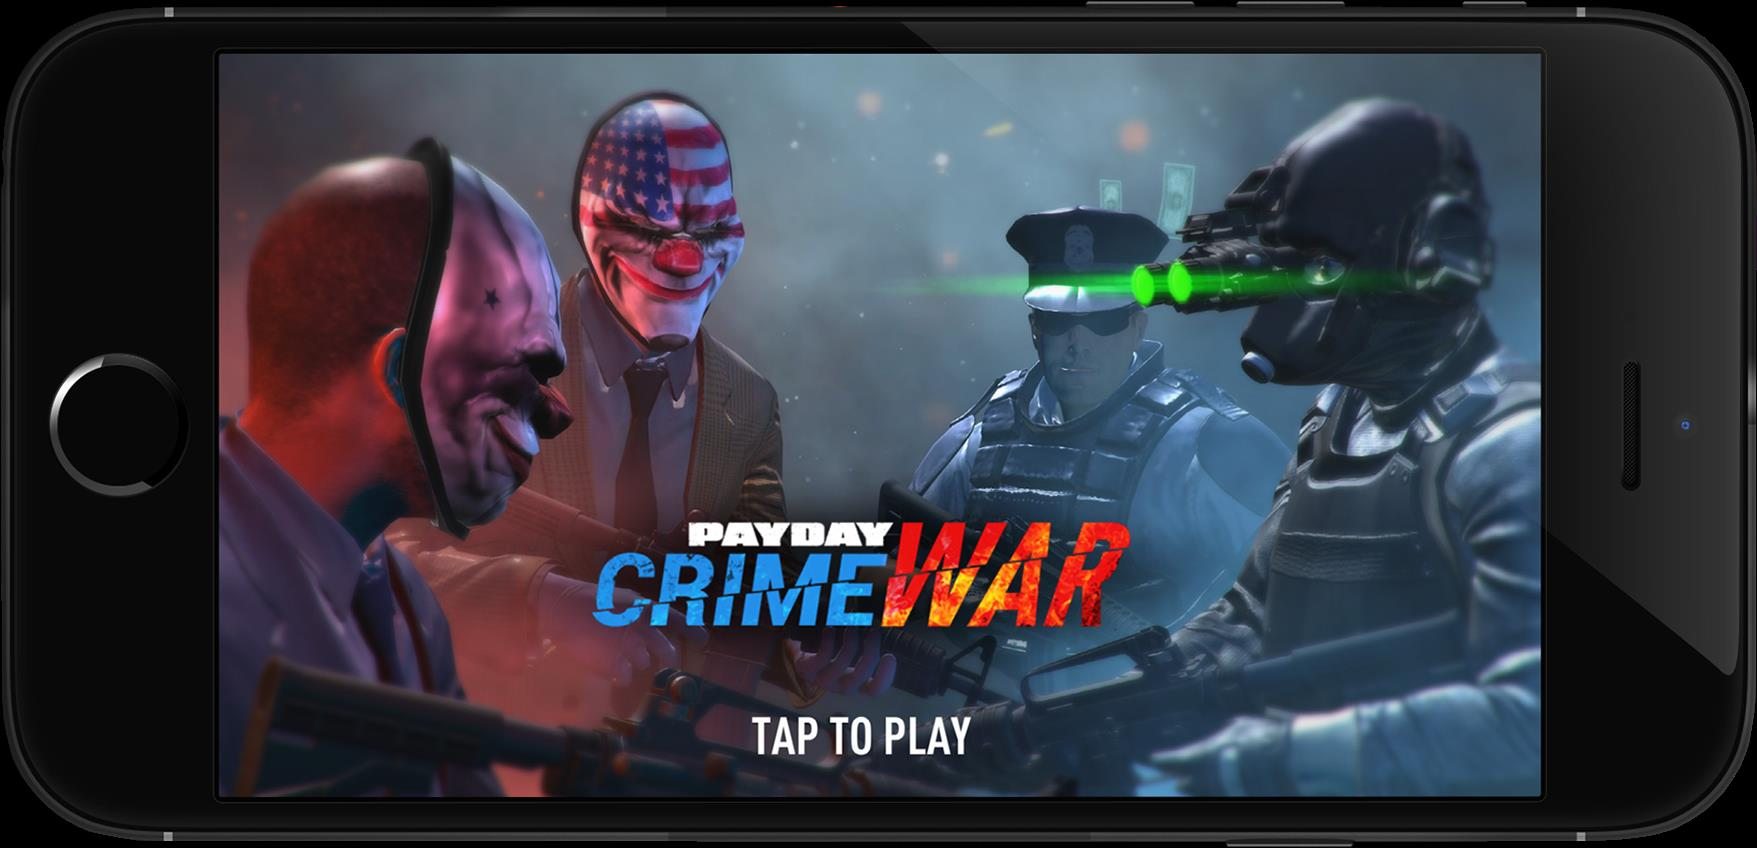 payday-crime-war-android-ios-1 PAYDAY Crime War: estúdio de Dead Effect 2 vai trabalhar no game